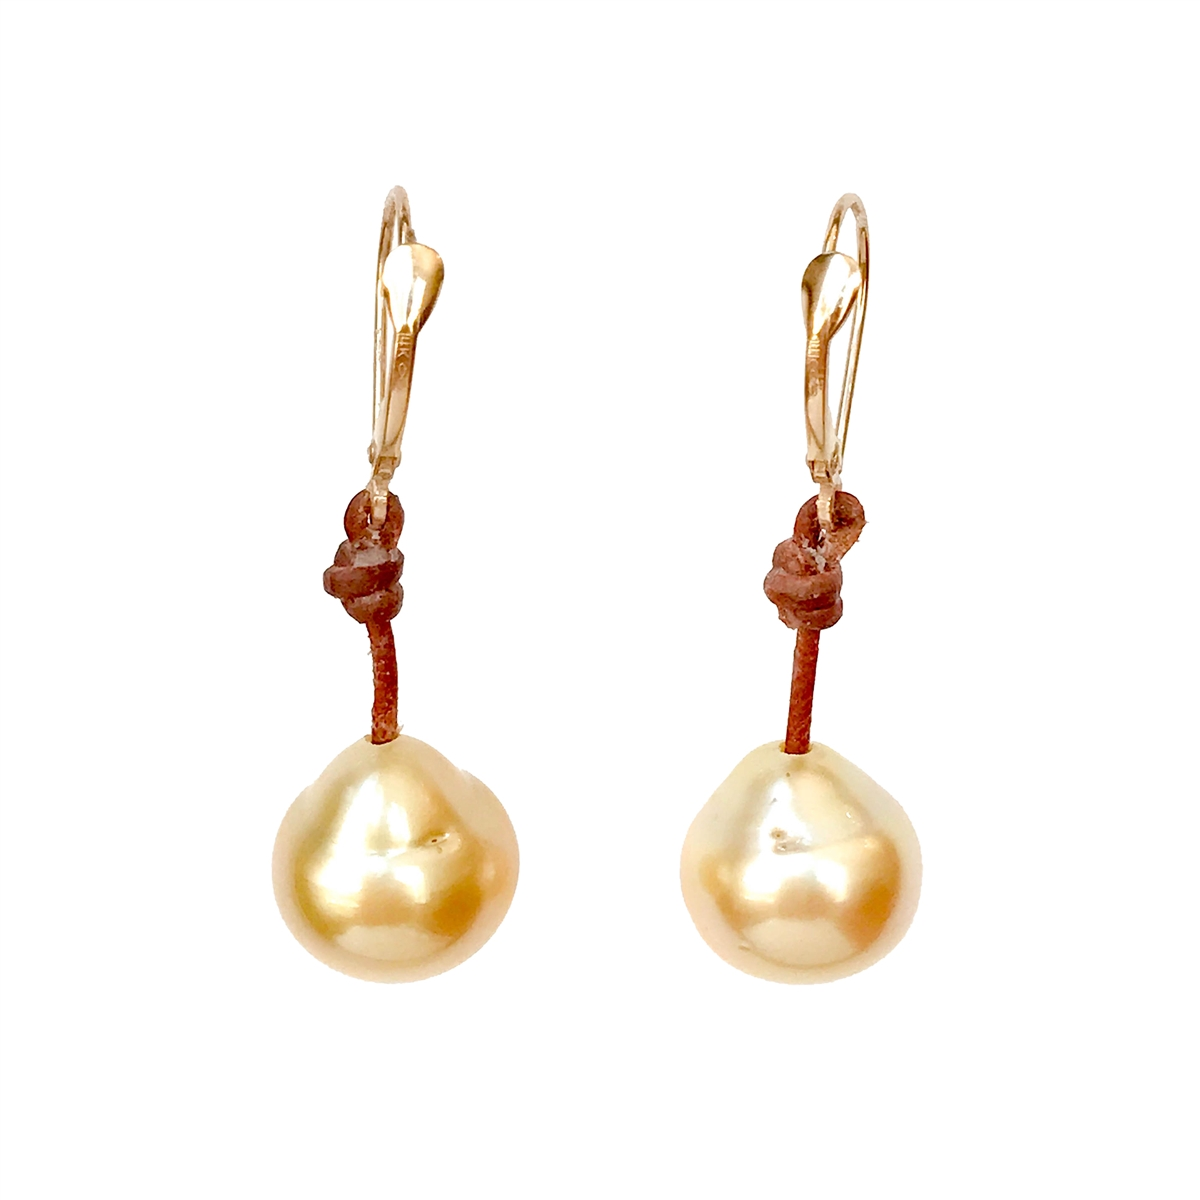 delfina and micro earrings pearl star delettrez earring single kultia